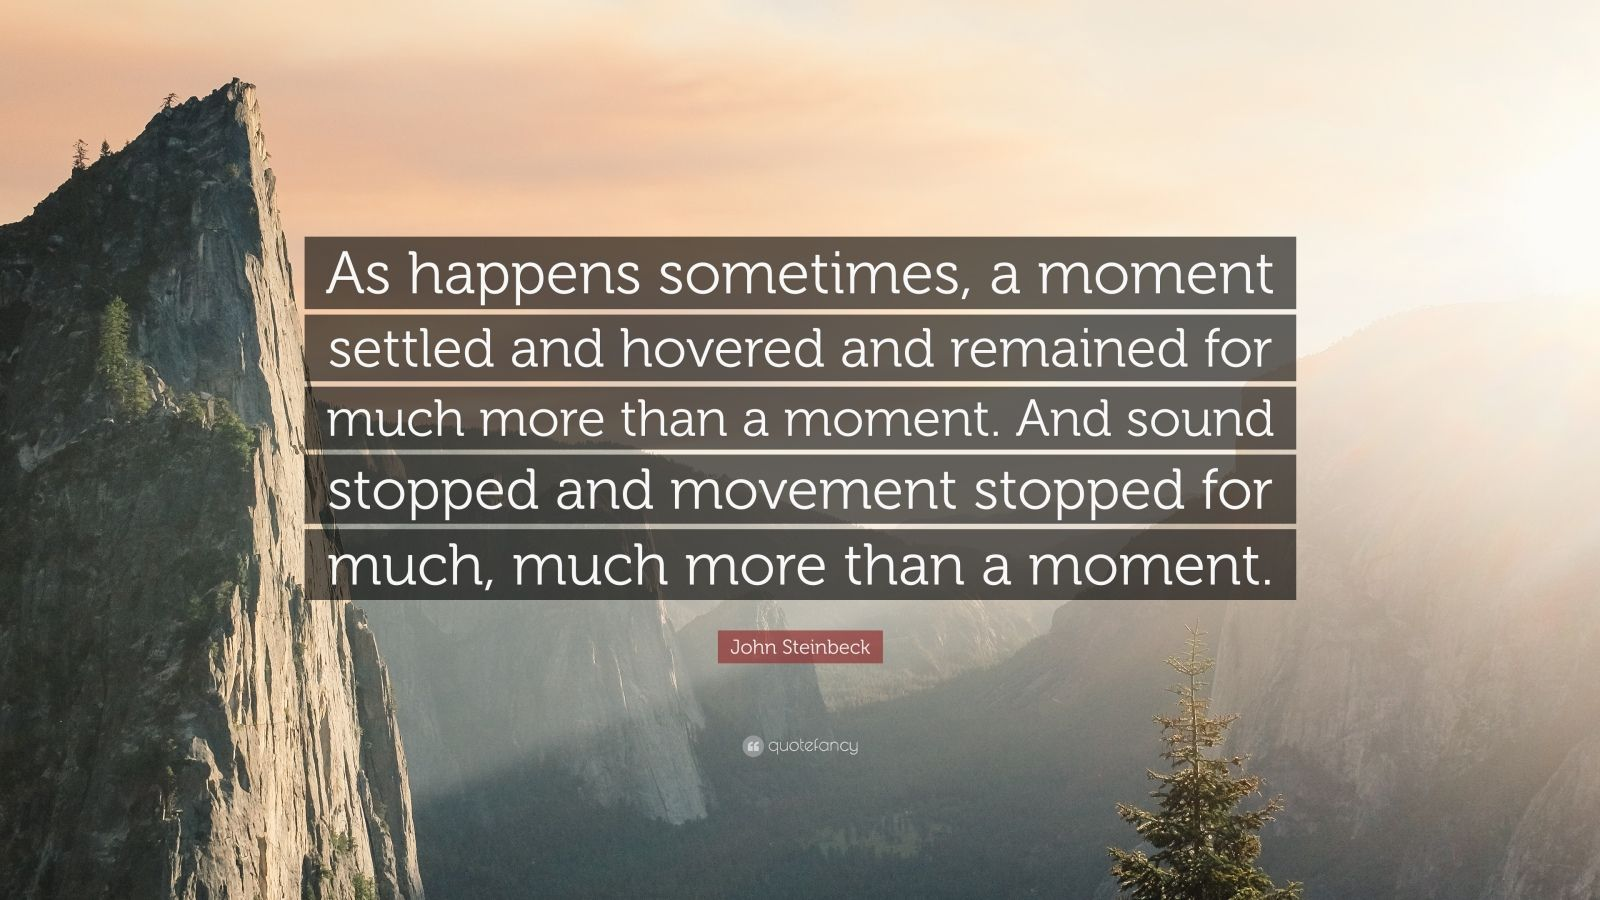 """John Steinbeck Quote: """"As happens sometimes, a moment settled and hovered and remained for much more than a moment. And sound stopped and movement stopped for much, much more than a moment."""""""